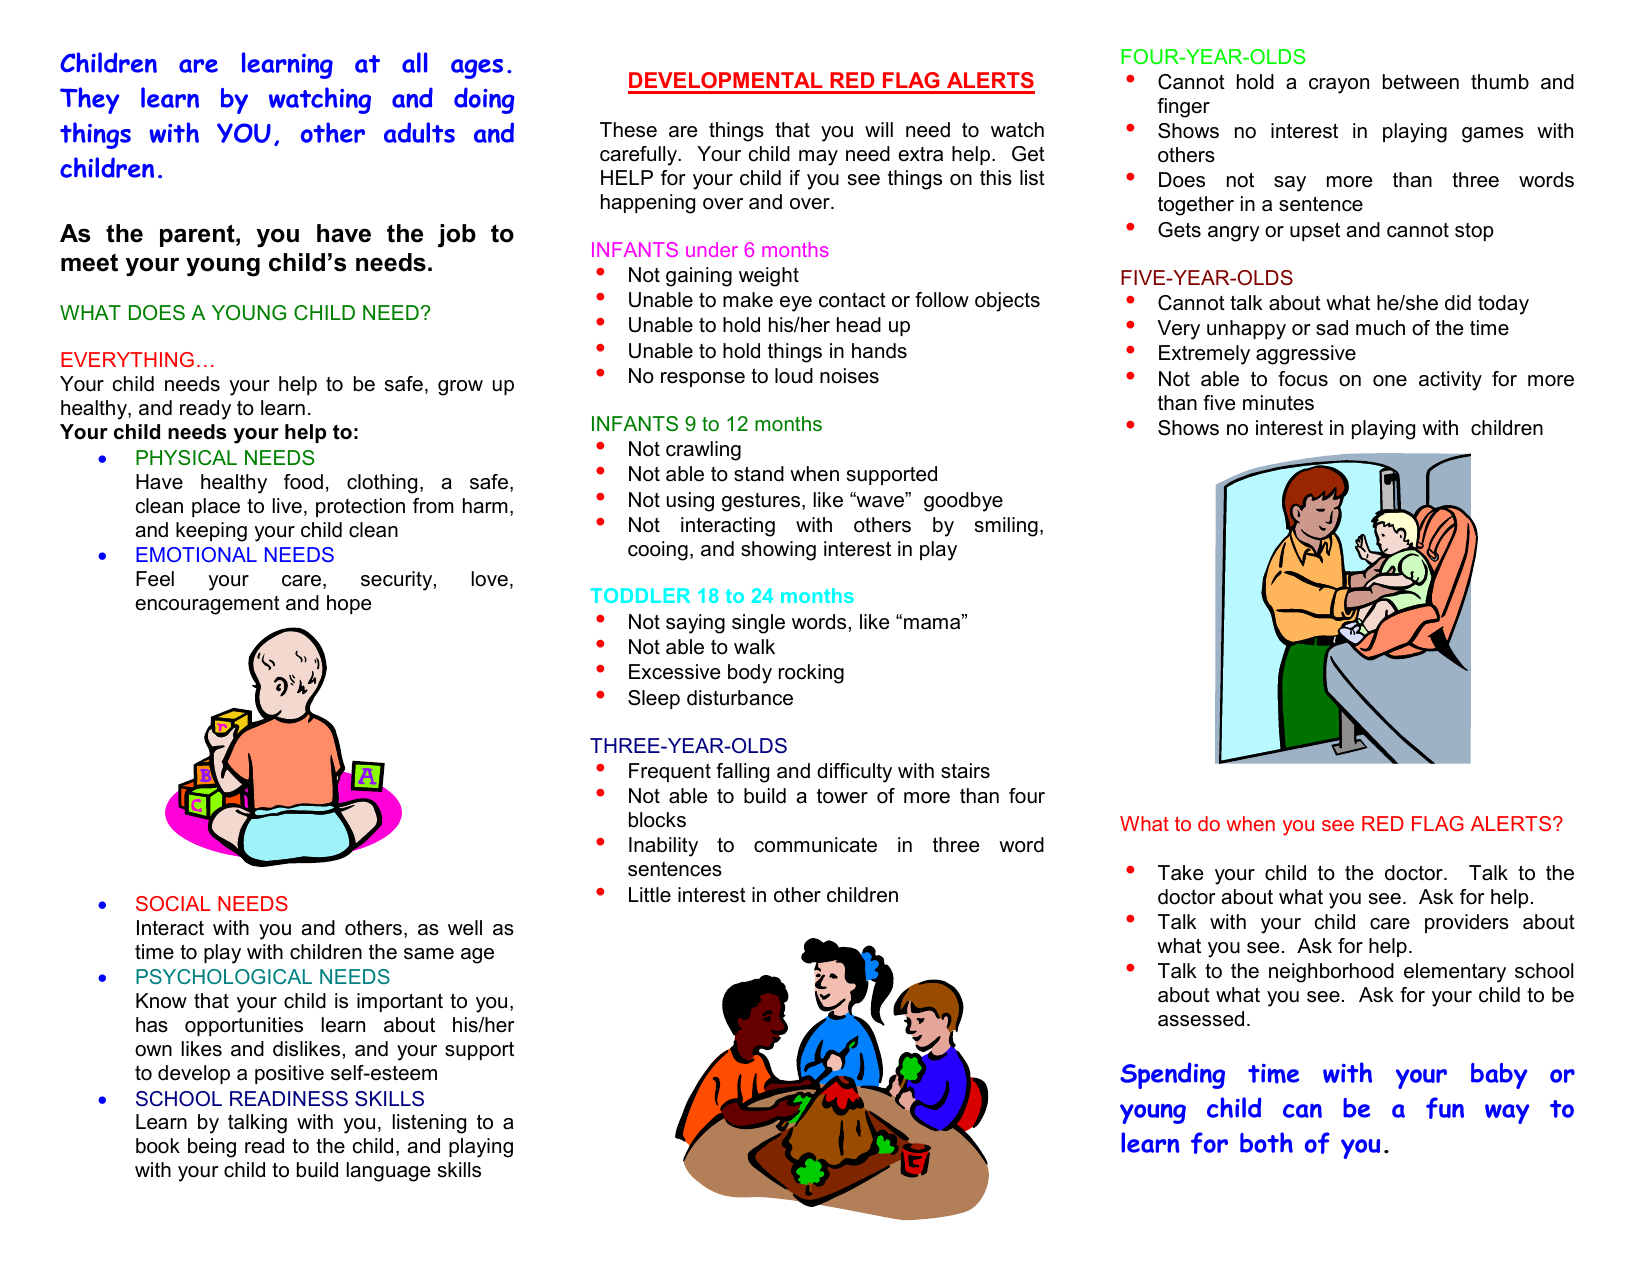 What Does a Young Child Need? - Los Angeles County Department